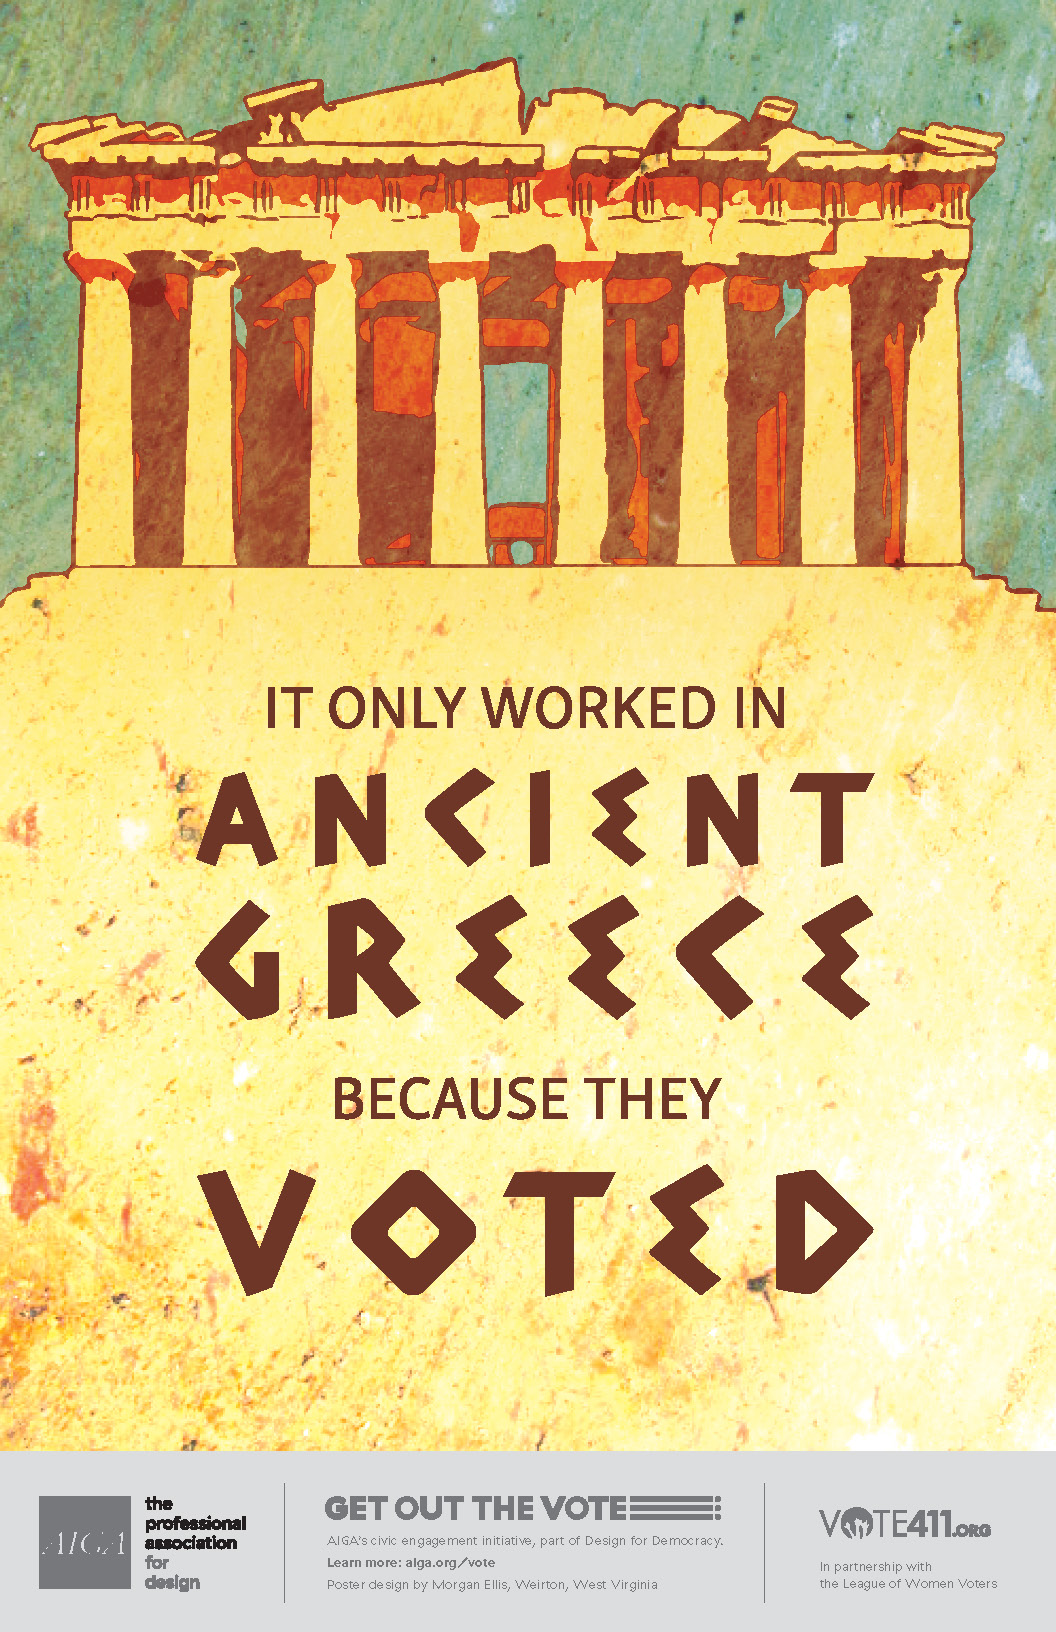 This poster design is focusing on the concept of Ancient Greece having a historical democracy. The typography says 'It only worked in Ancient Greece because they voted,' with 'Ancient Greece' and 'Voted' being larger and in a Grecian font for emphasis. There is a simplified illustration of the Parthenon at the top, to further draw the connection between the idea and the design.